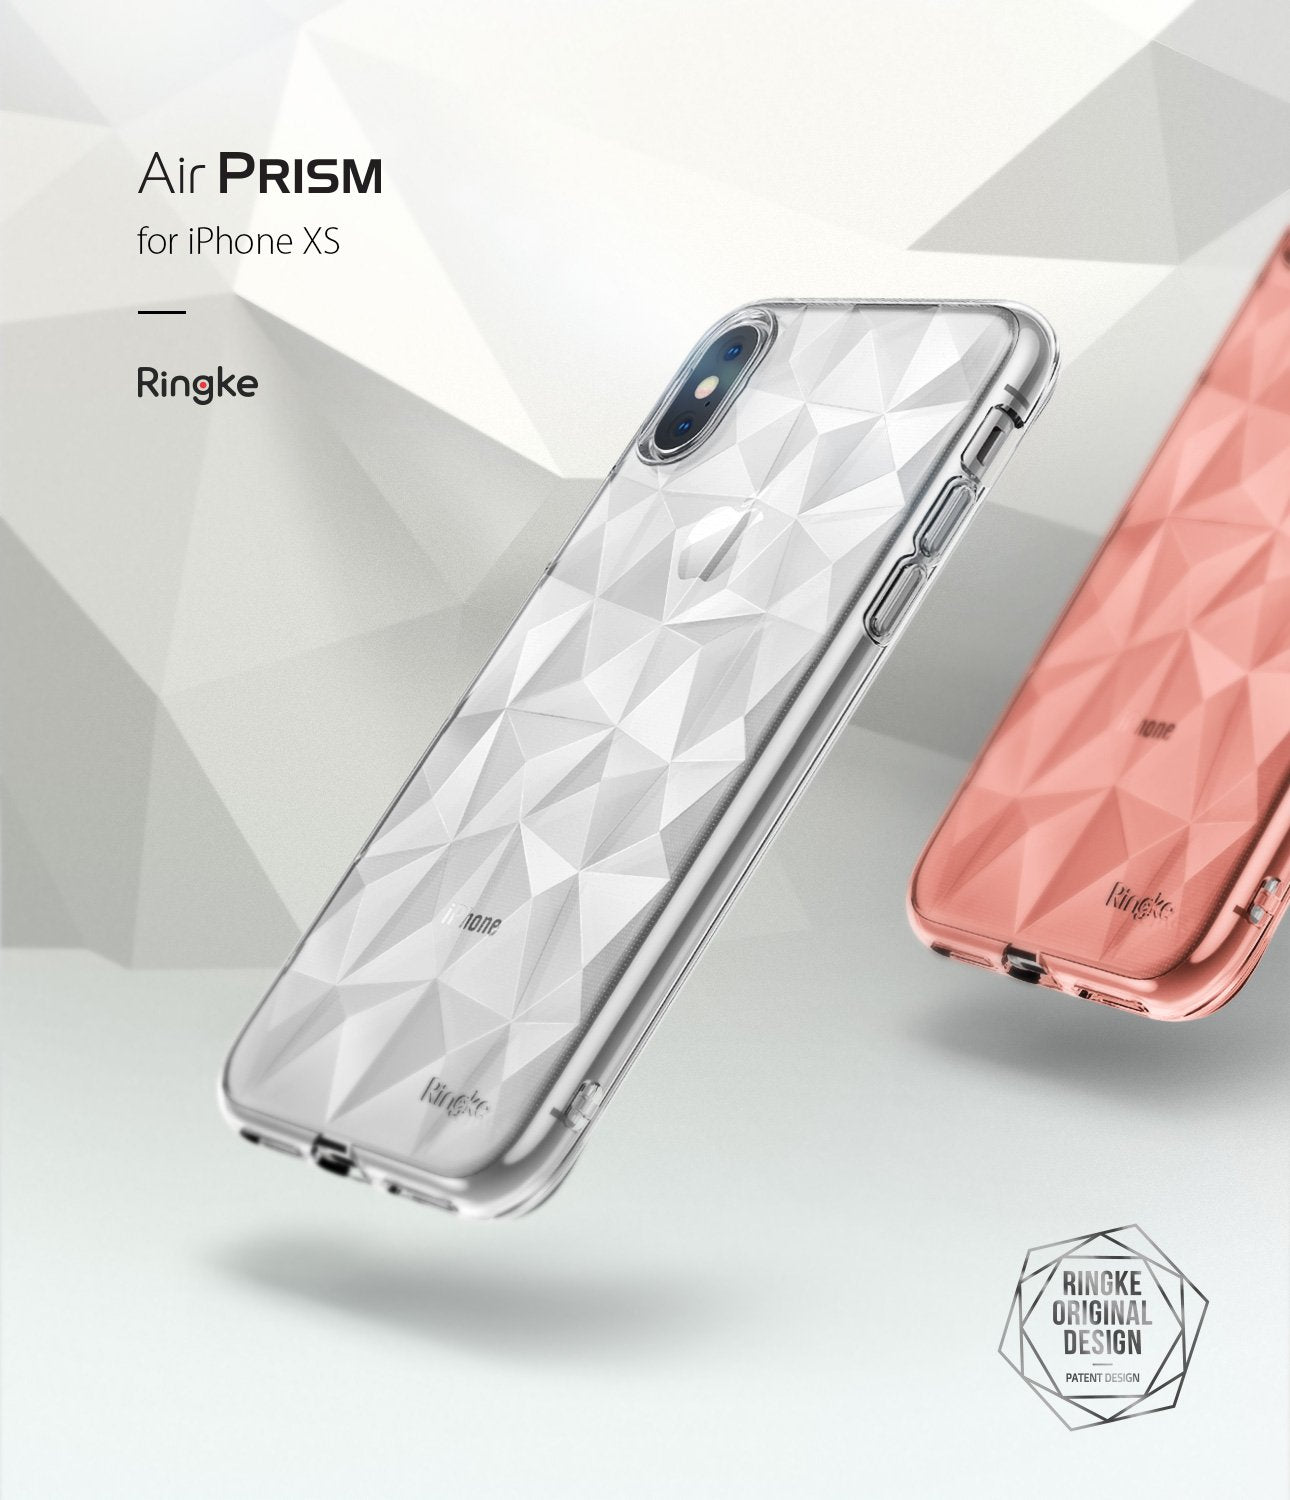 ringke air prism for iphone xs case cover main